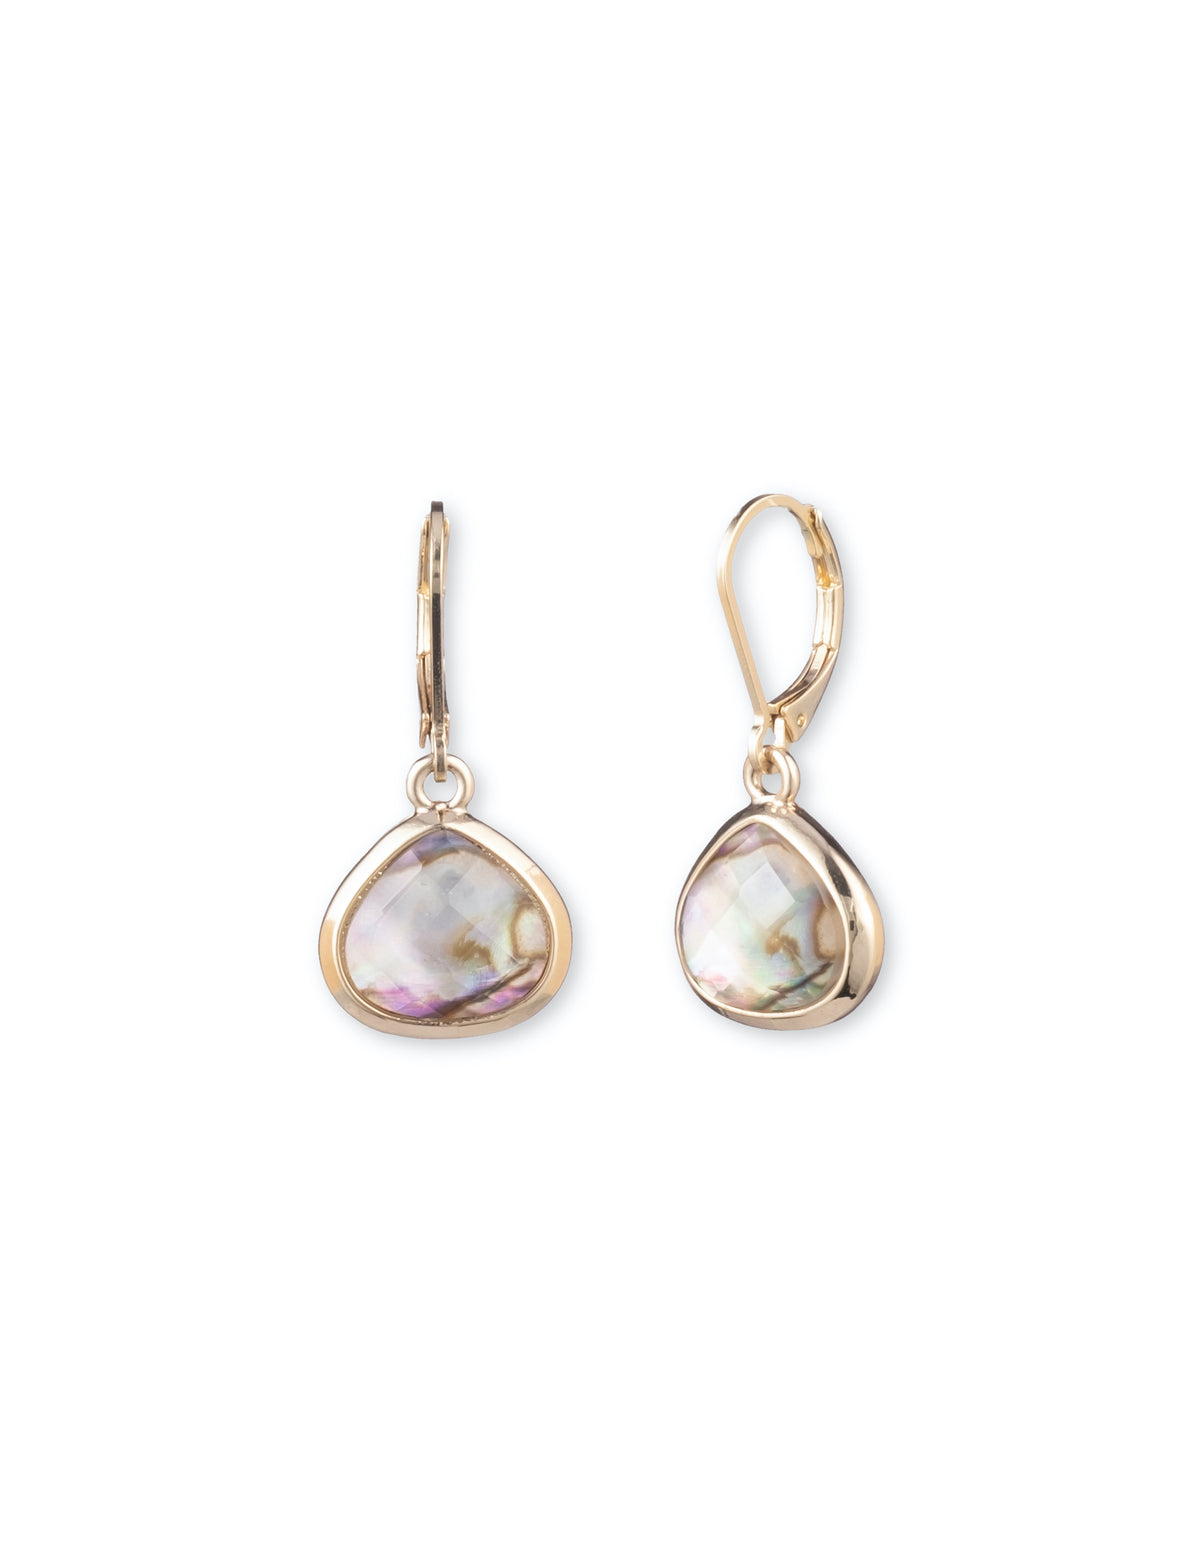 Abalone Stone Gold-Tone Earrings